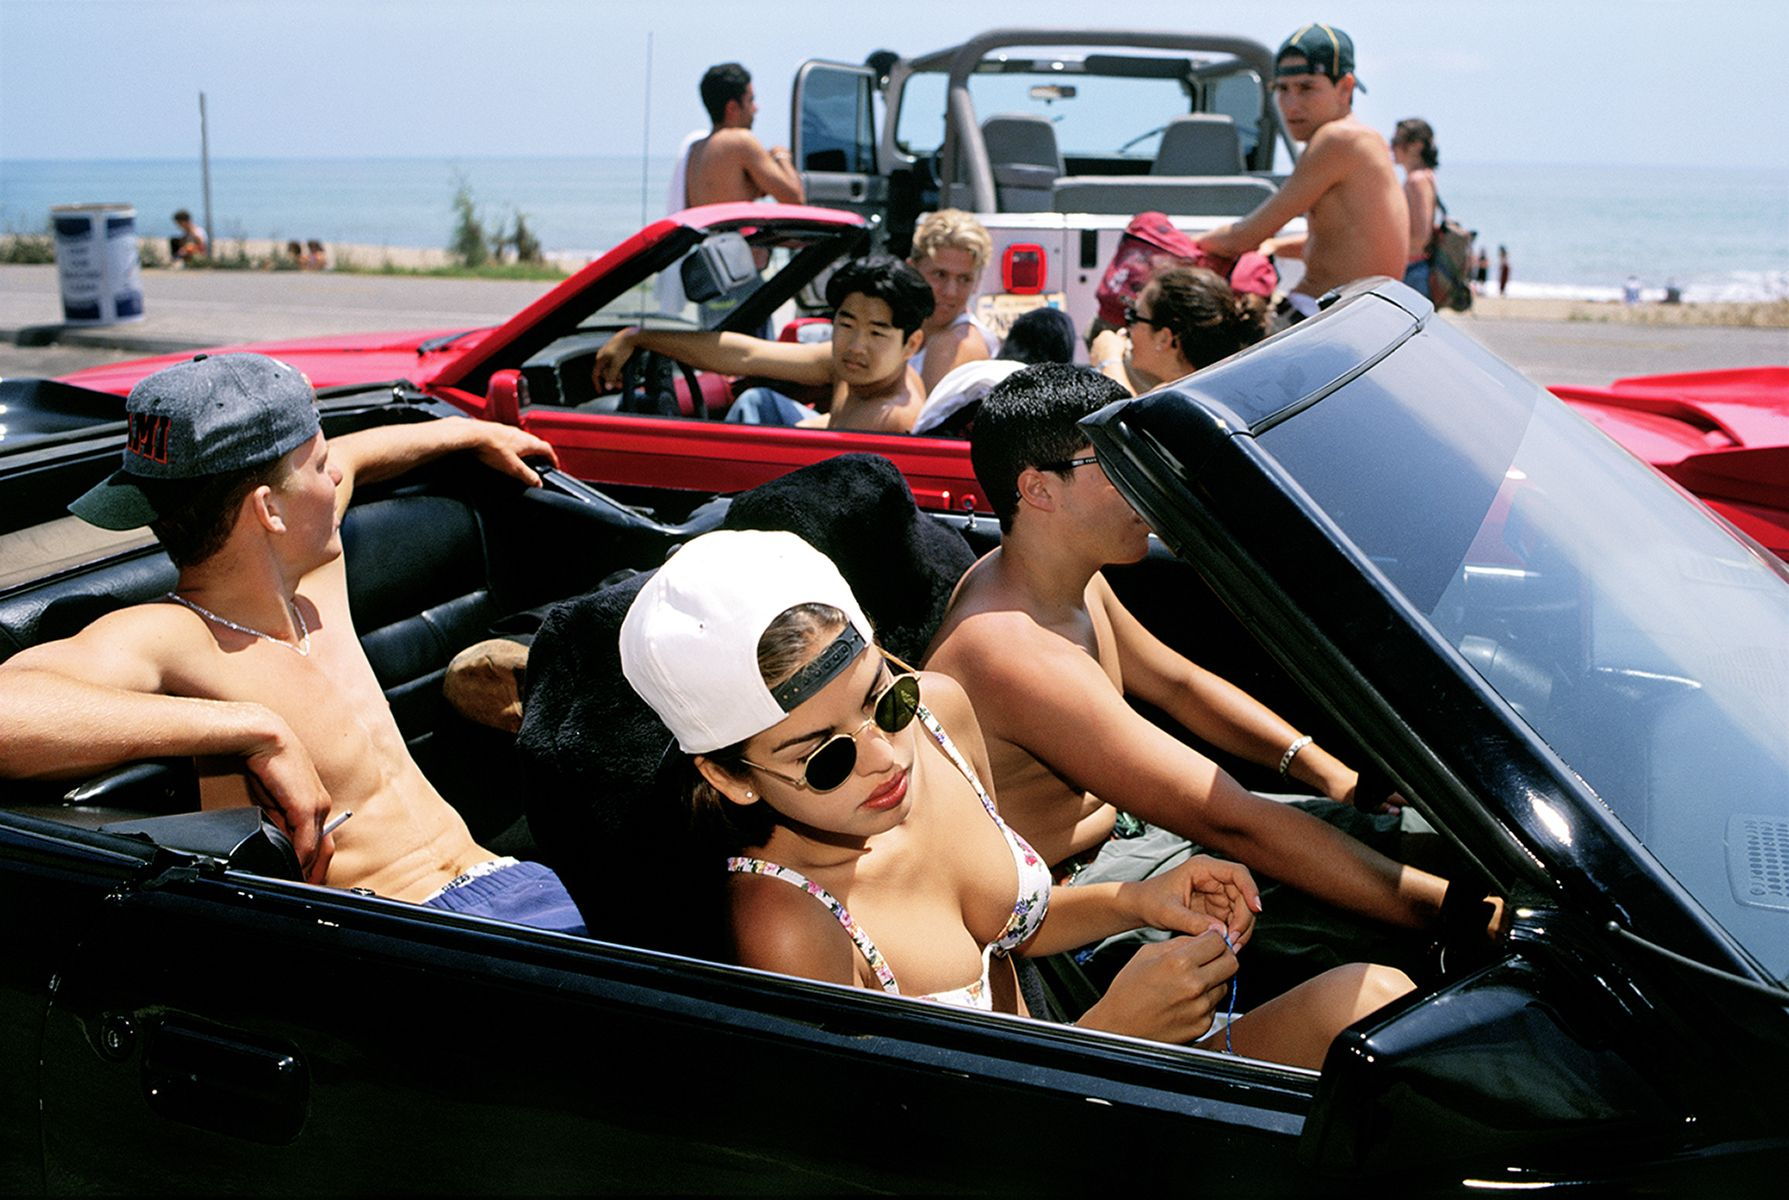 Mijanou, 18, who was voted Best Physique at Beverly Hills High School, skips class to go to the beach with friends on the annual Senior Beach Day, Santa Monica, California, 1993